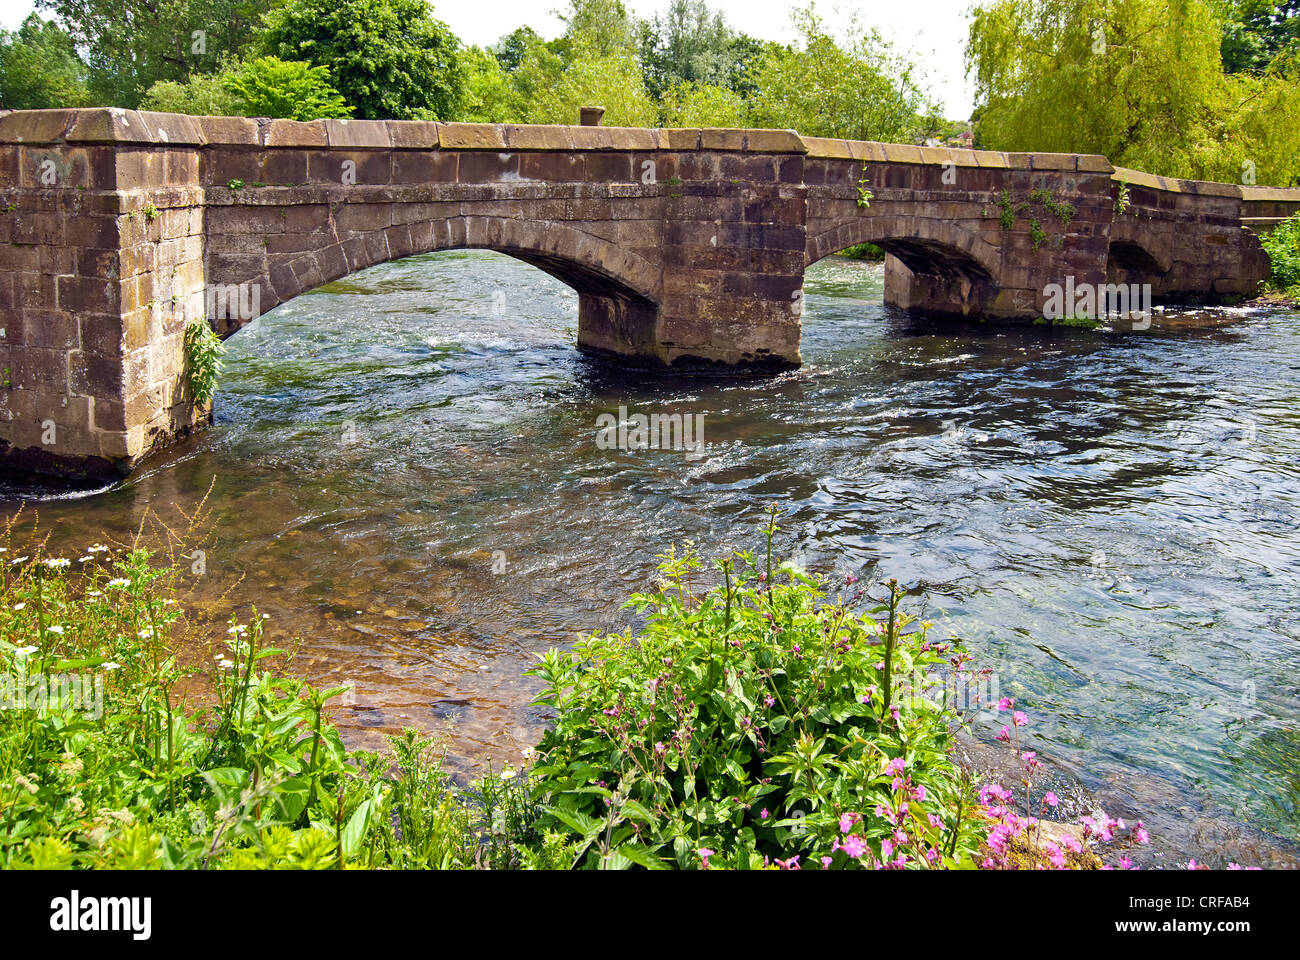 Holme Bridge, Bakewell, a packhorse bridge over the River Wye - Stock Image